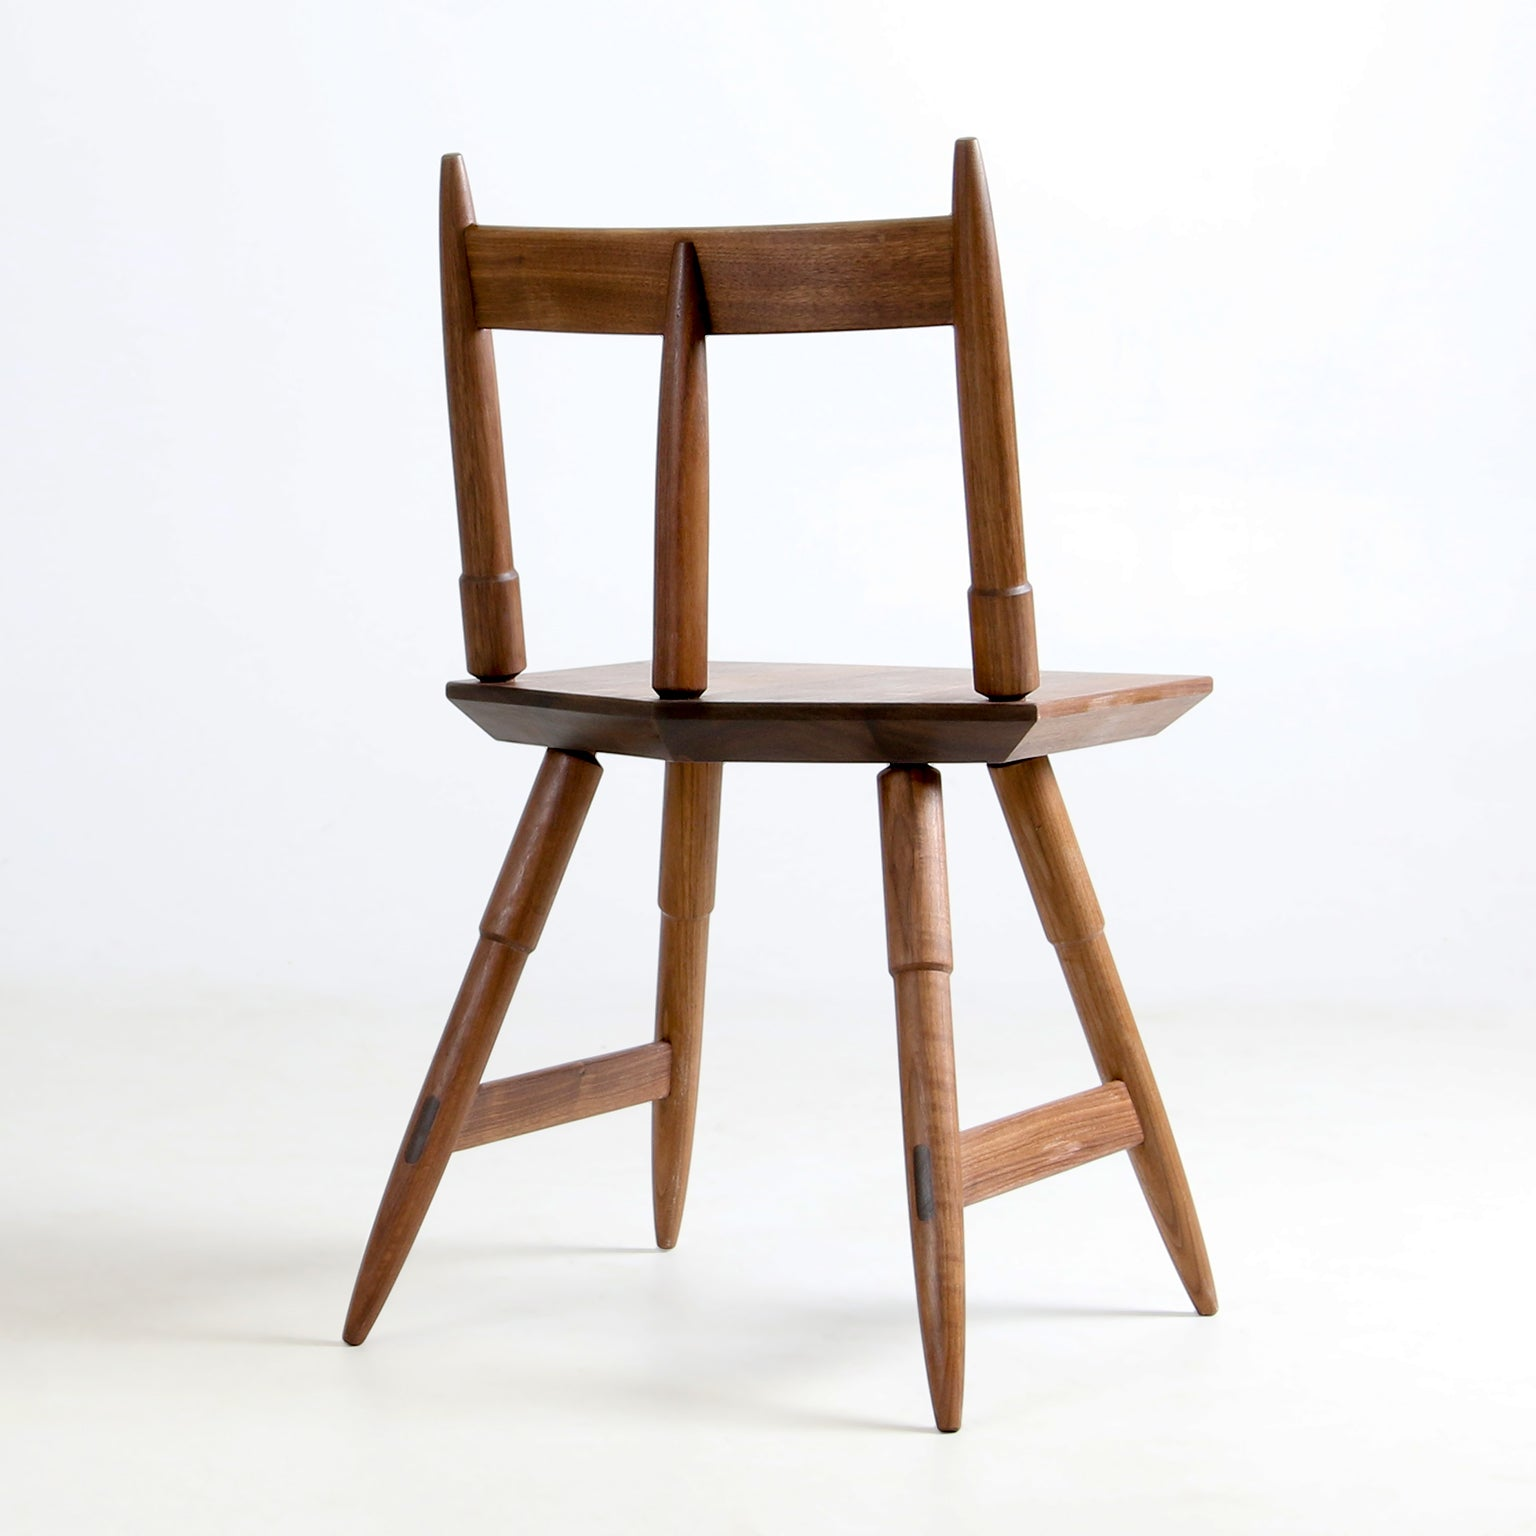 Rockport Chair in Walnut by Studio DUNN back view